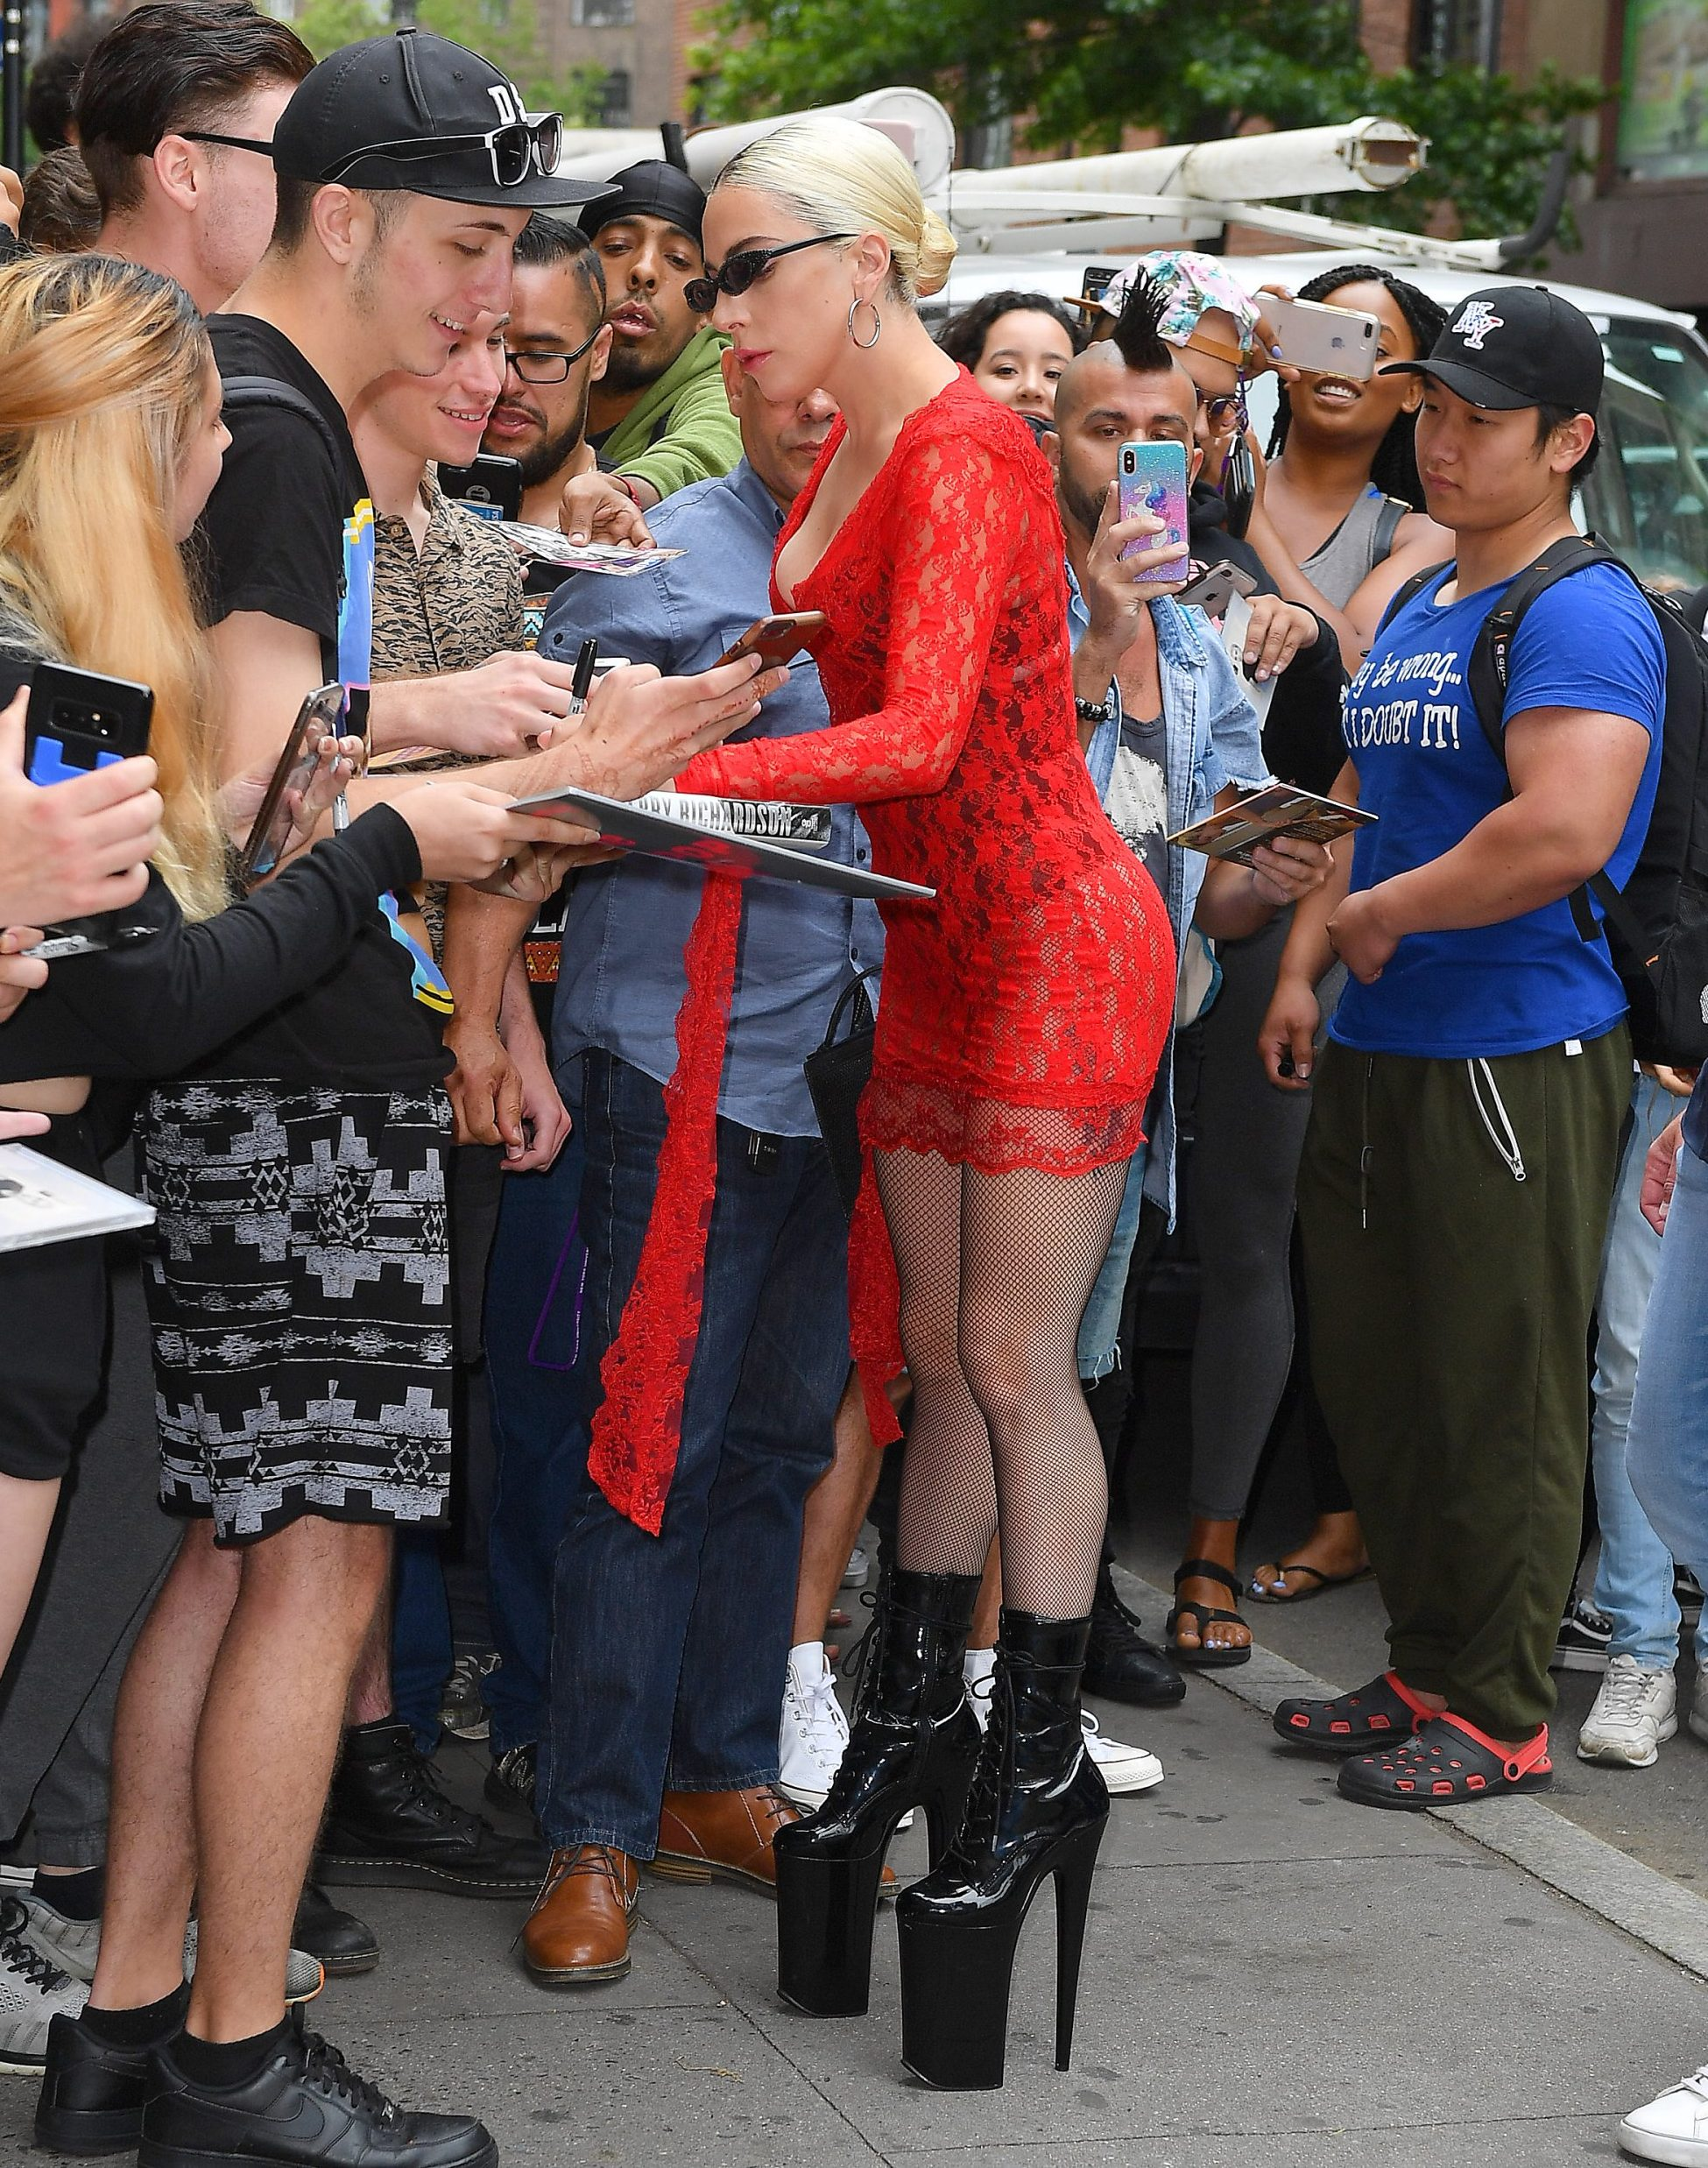 Lady Gaga wears red mesh and greets fans at the studio in New York City Pictured: Lady Gaga Ref: SPL5006839 270618 NON-EXCLUSIVE Picture by: Robert O'neil / SplashNews.com Splash News and Pictures Los Angeles: 310-821-2666 New York: 212-619-2666 London: 0207 644 7656 Milan: +39 02 4399 8577 photodesk@splashnews.com World Rights,